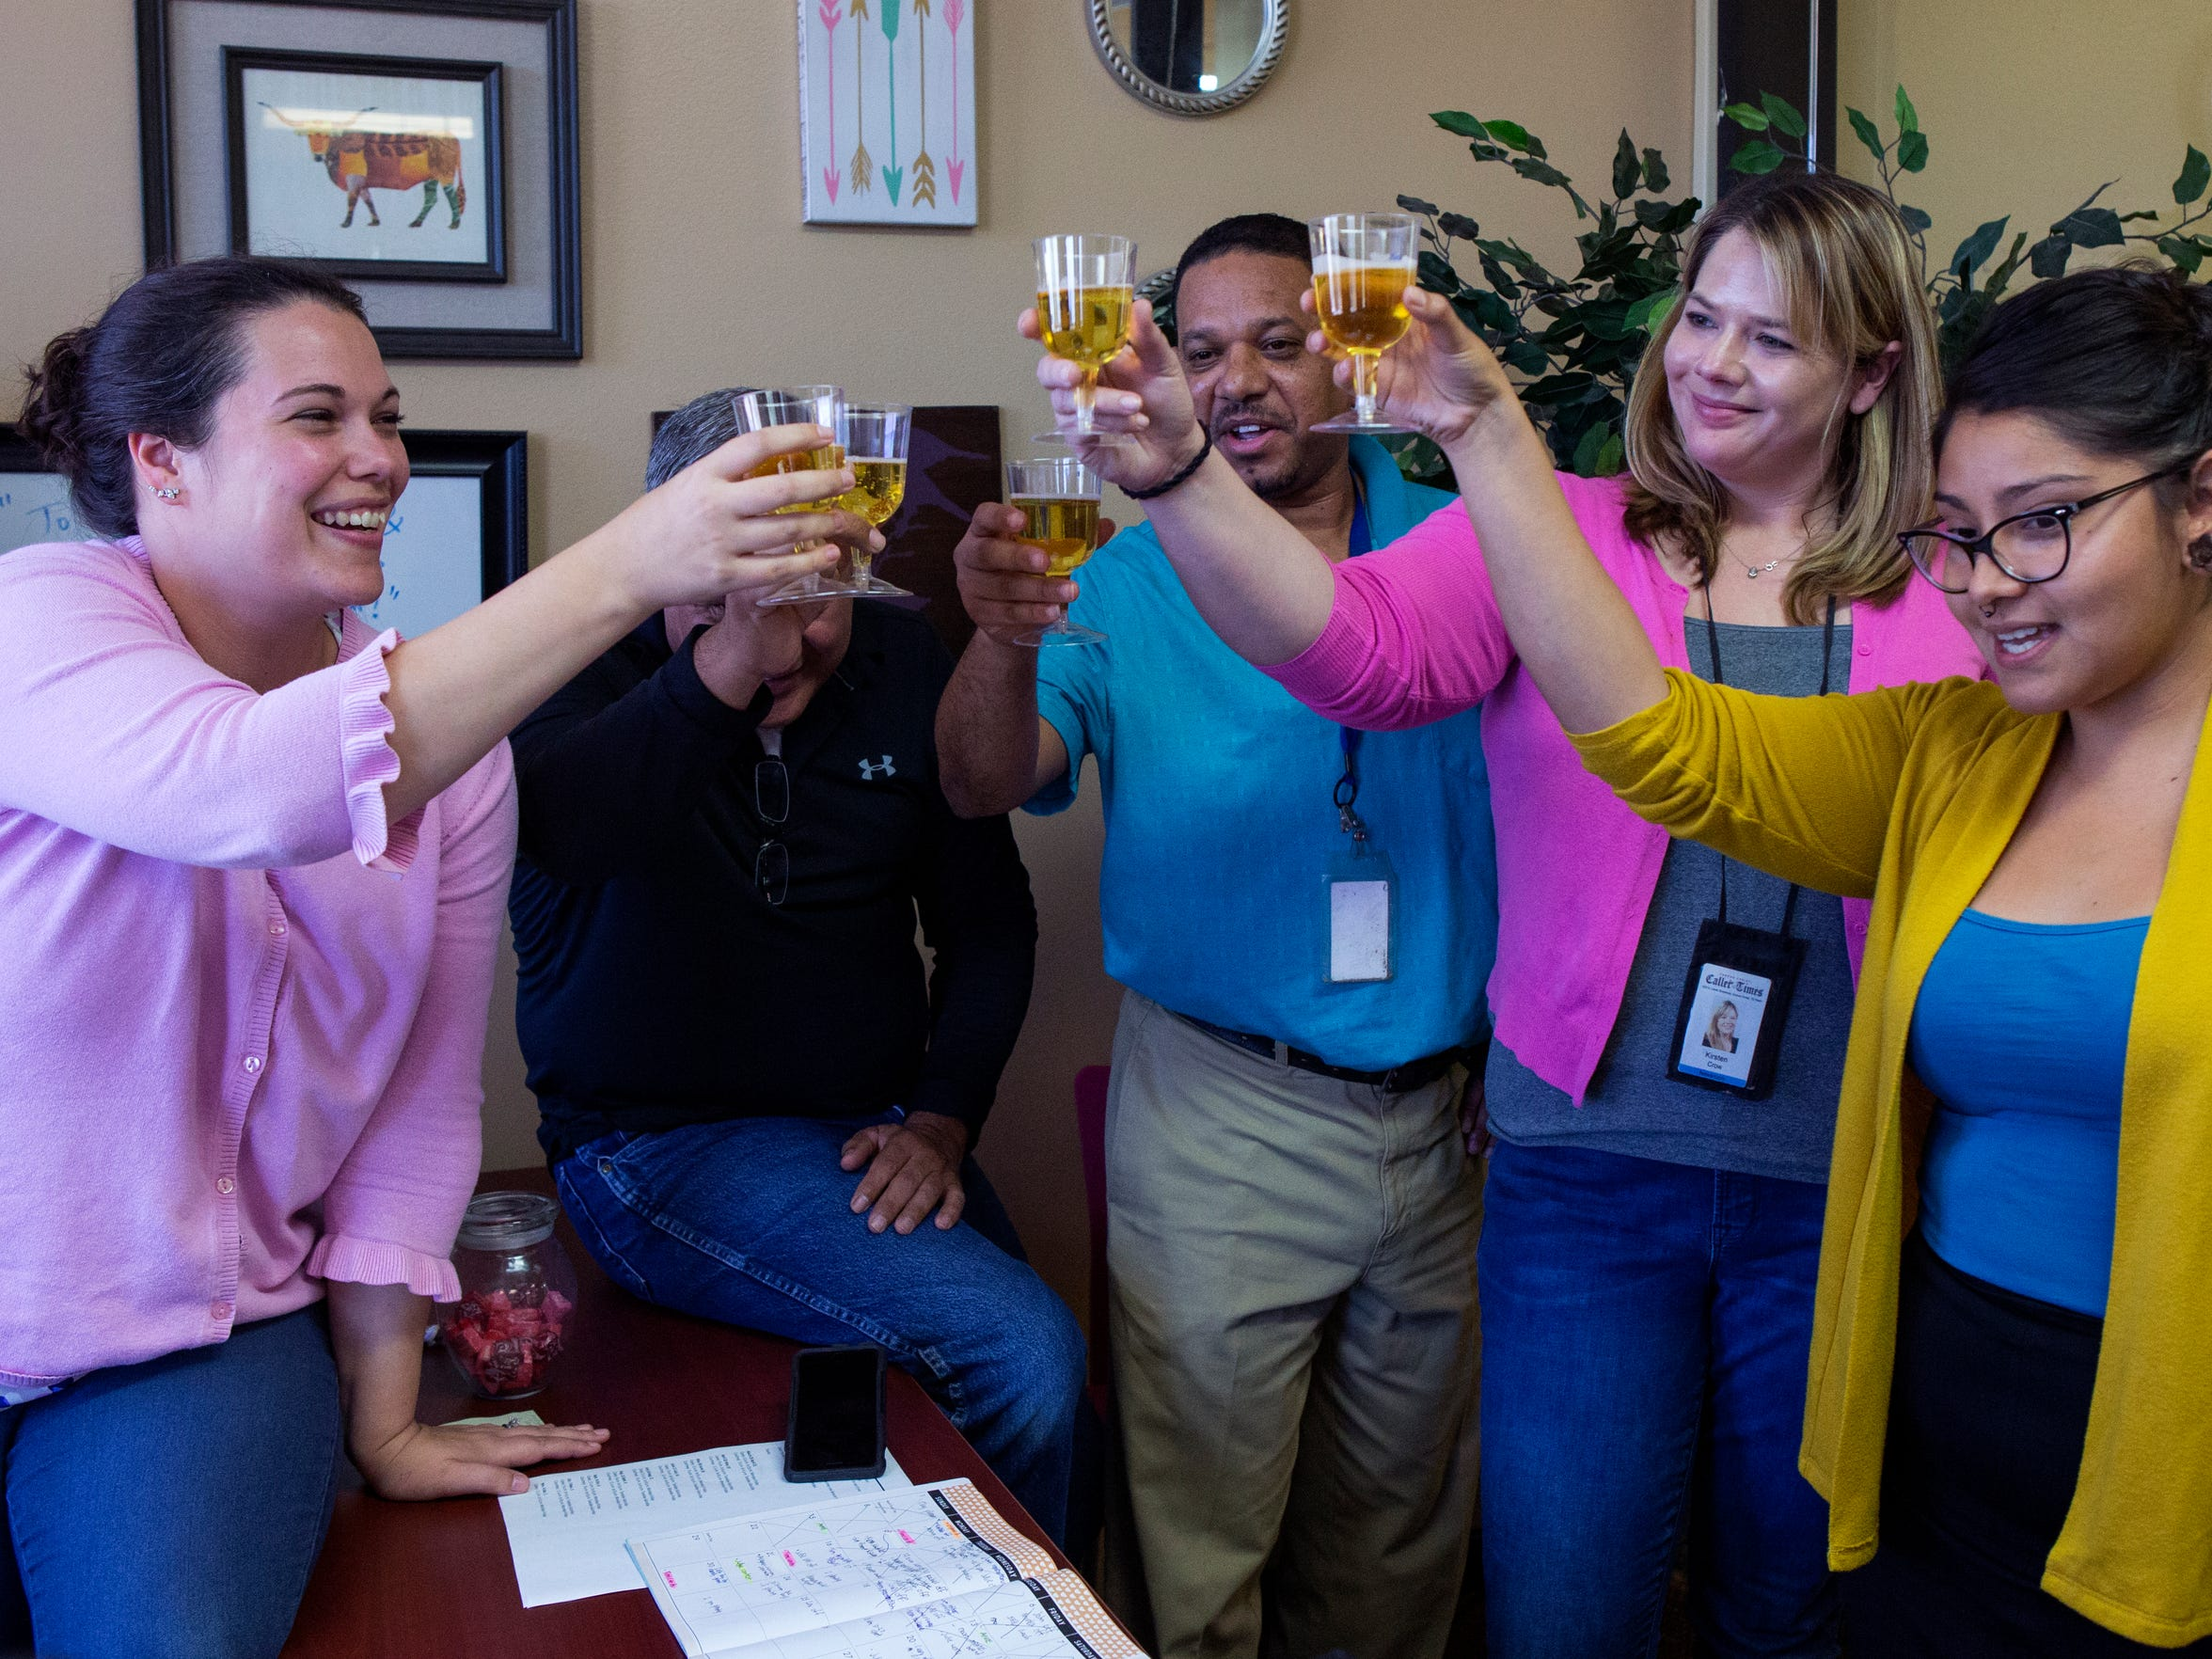 Caller-Times News Director Mary Ann Cavazos Beckett (from left), Editor Tim Archuleta, Lead Coach Chris Ramirez, and reporters Kirsten Crow and Beatriz Alvarado give a celebratory toast during a video conference call with The Arizona Republic and other USA Today Network newspapers that participated in The Wall series. The series won a Pulitzer Prize for the Republic and the network on Monday, April 16, 2018. The Caller-Times staff contributed reporting, research, photos and video and ran the series in its entirety.